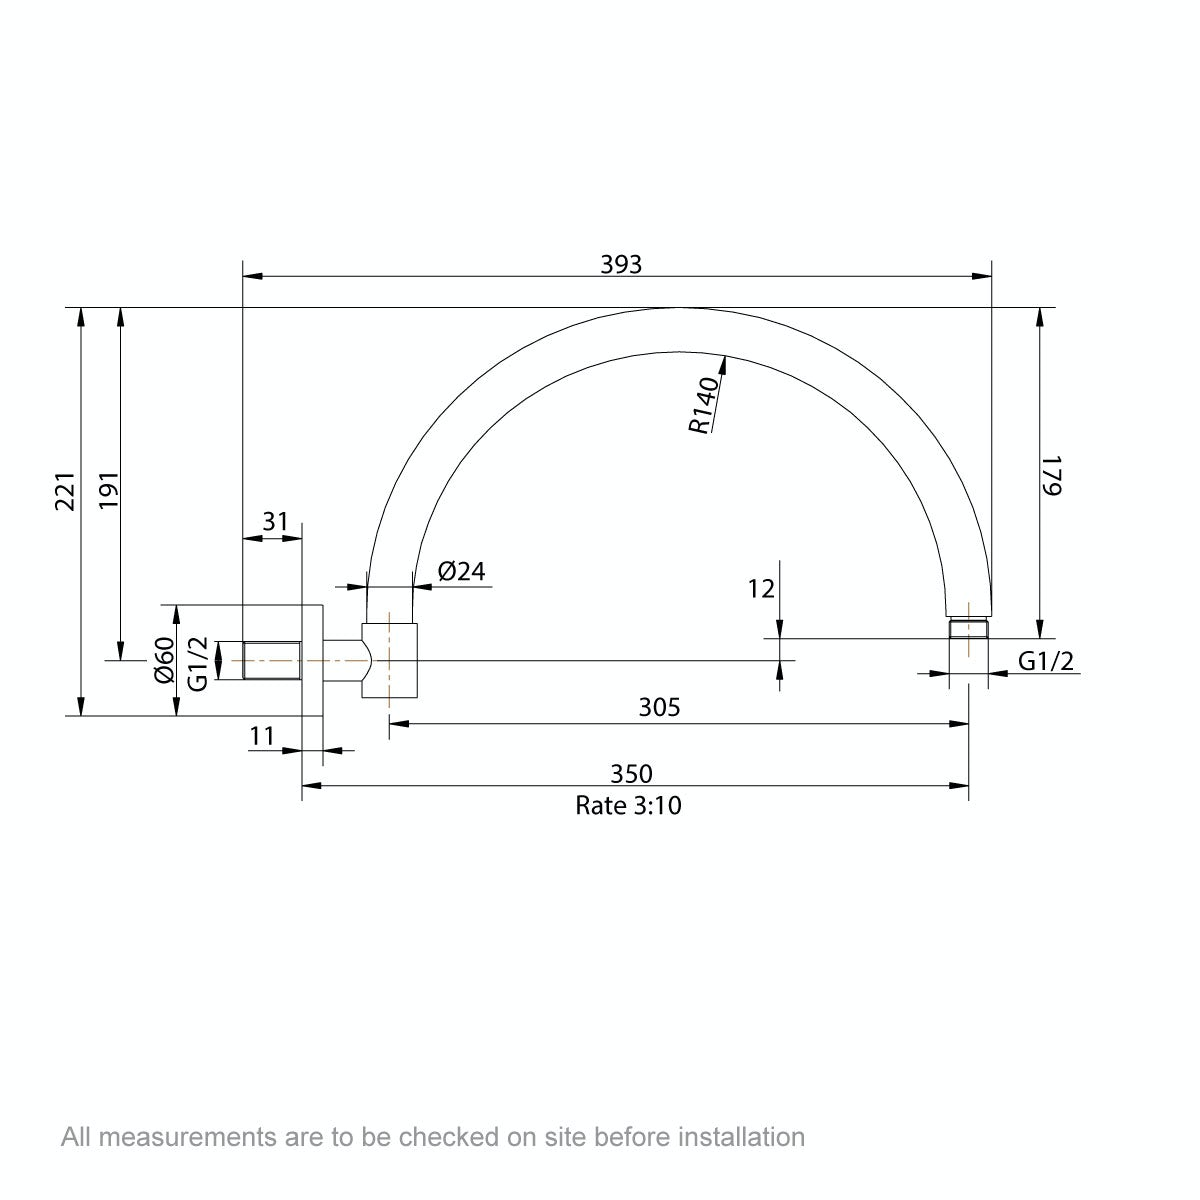 Dimensions for The Bath Co. Traditional wall shower arm